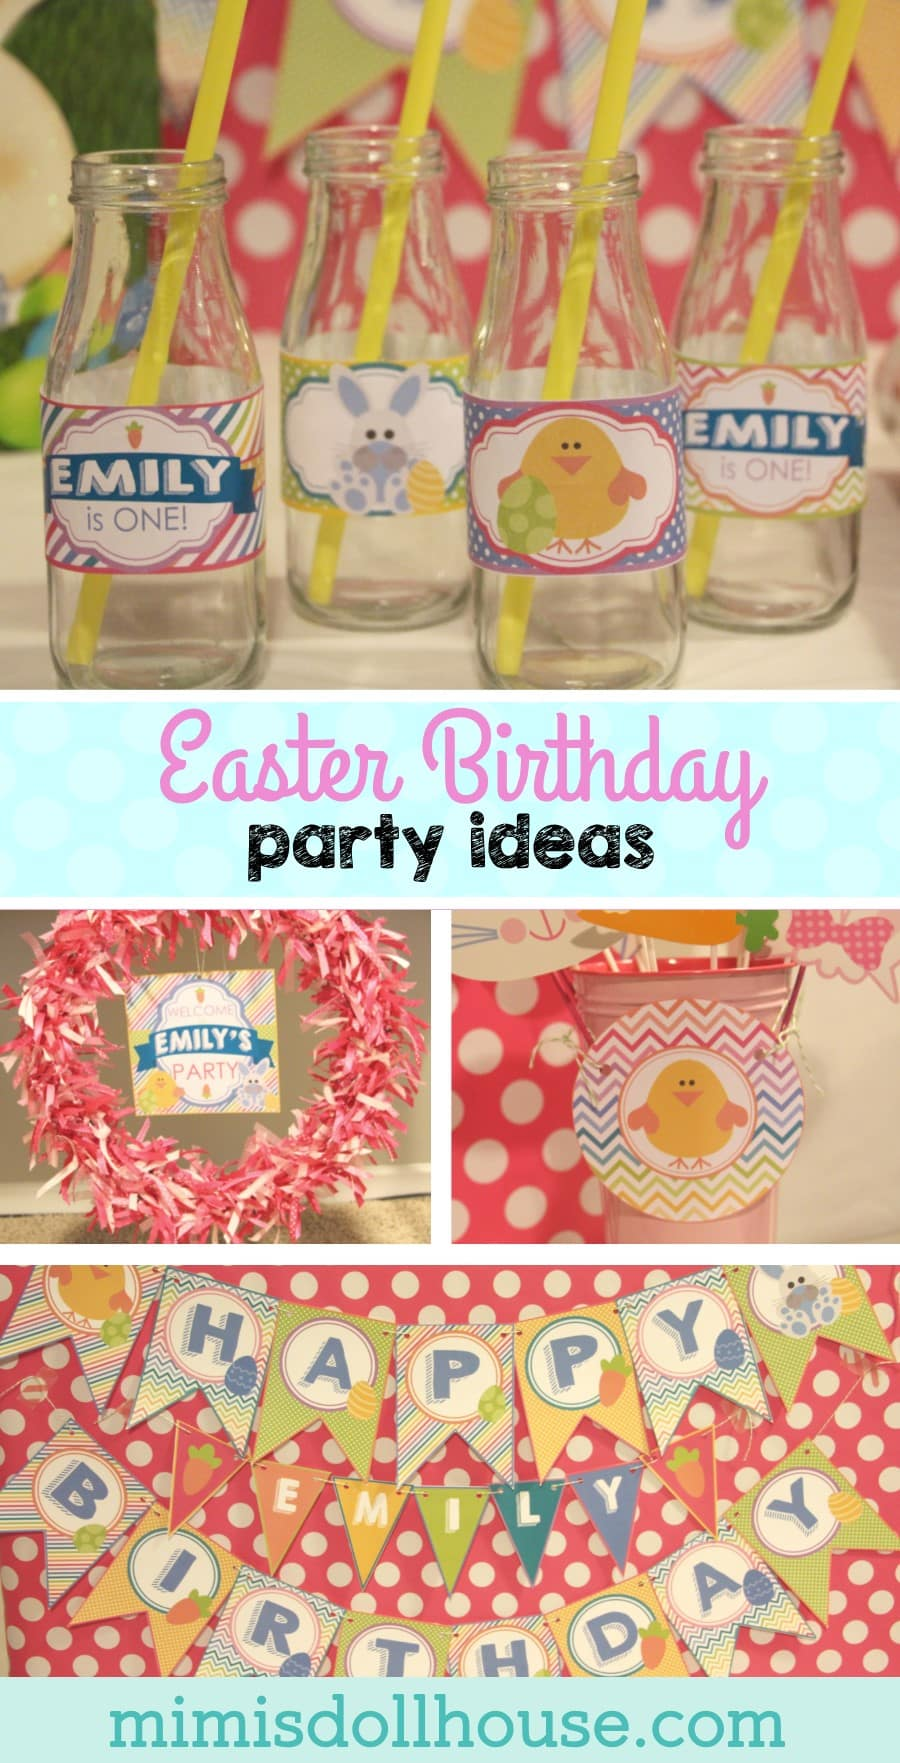 Easter: Hoppy Birthday Party, Bunny Style. Here is a sweet Easter Birthday Party just right for a spring birthday.#easter #birthday #party #parties #easterbirthday #bunny #chick #hoppybirthday #kids